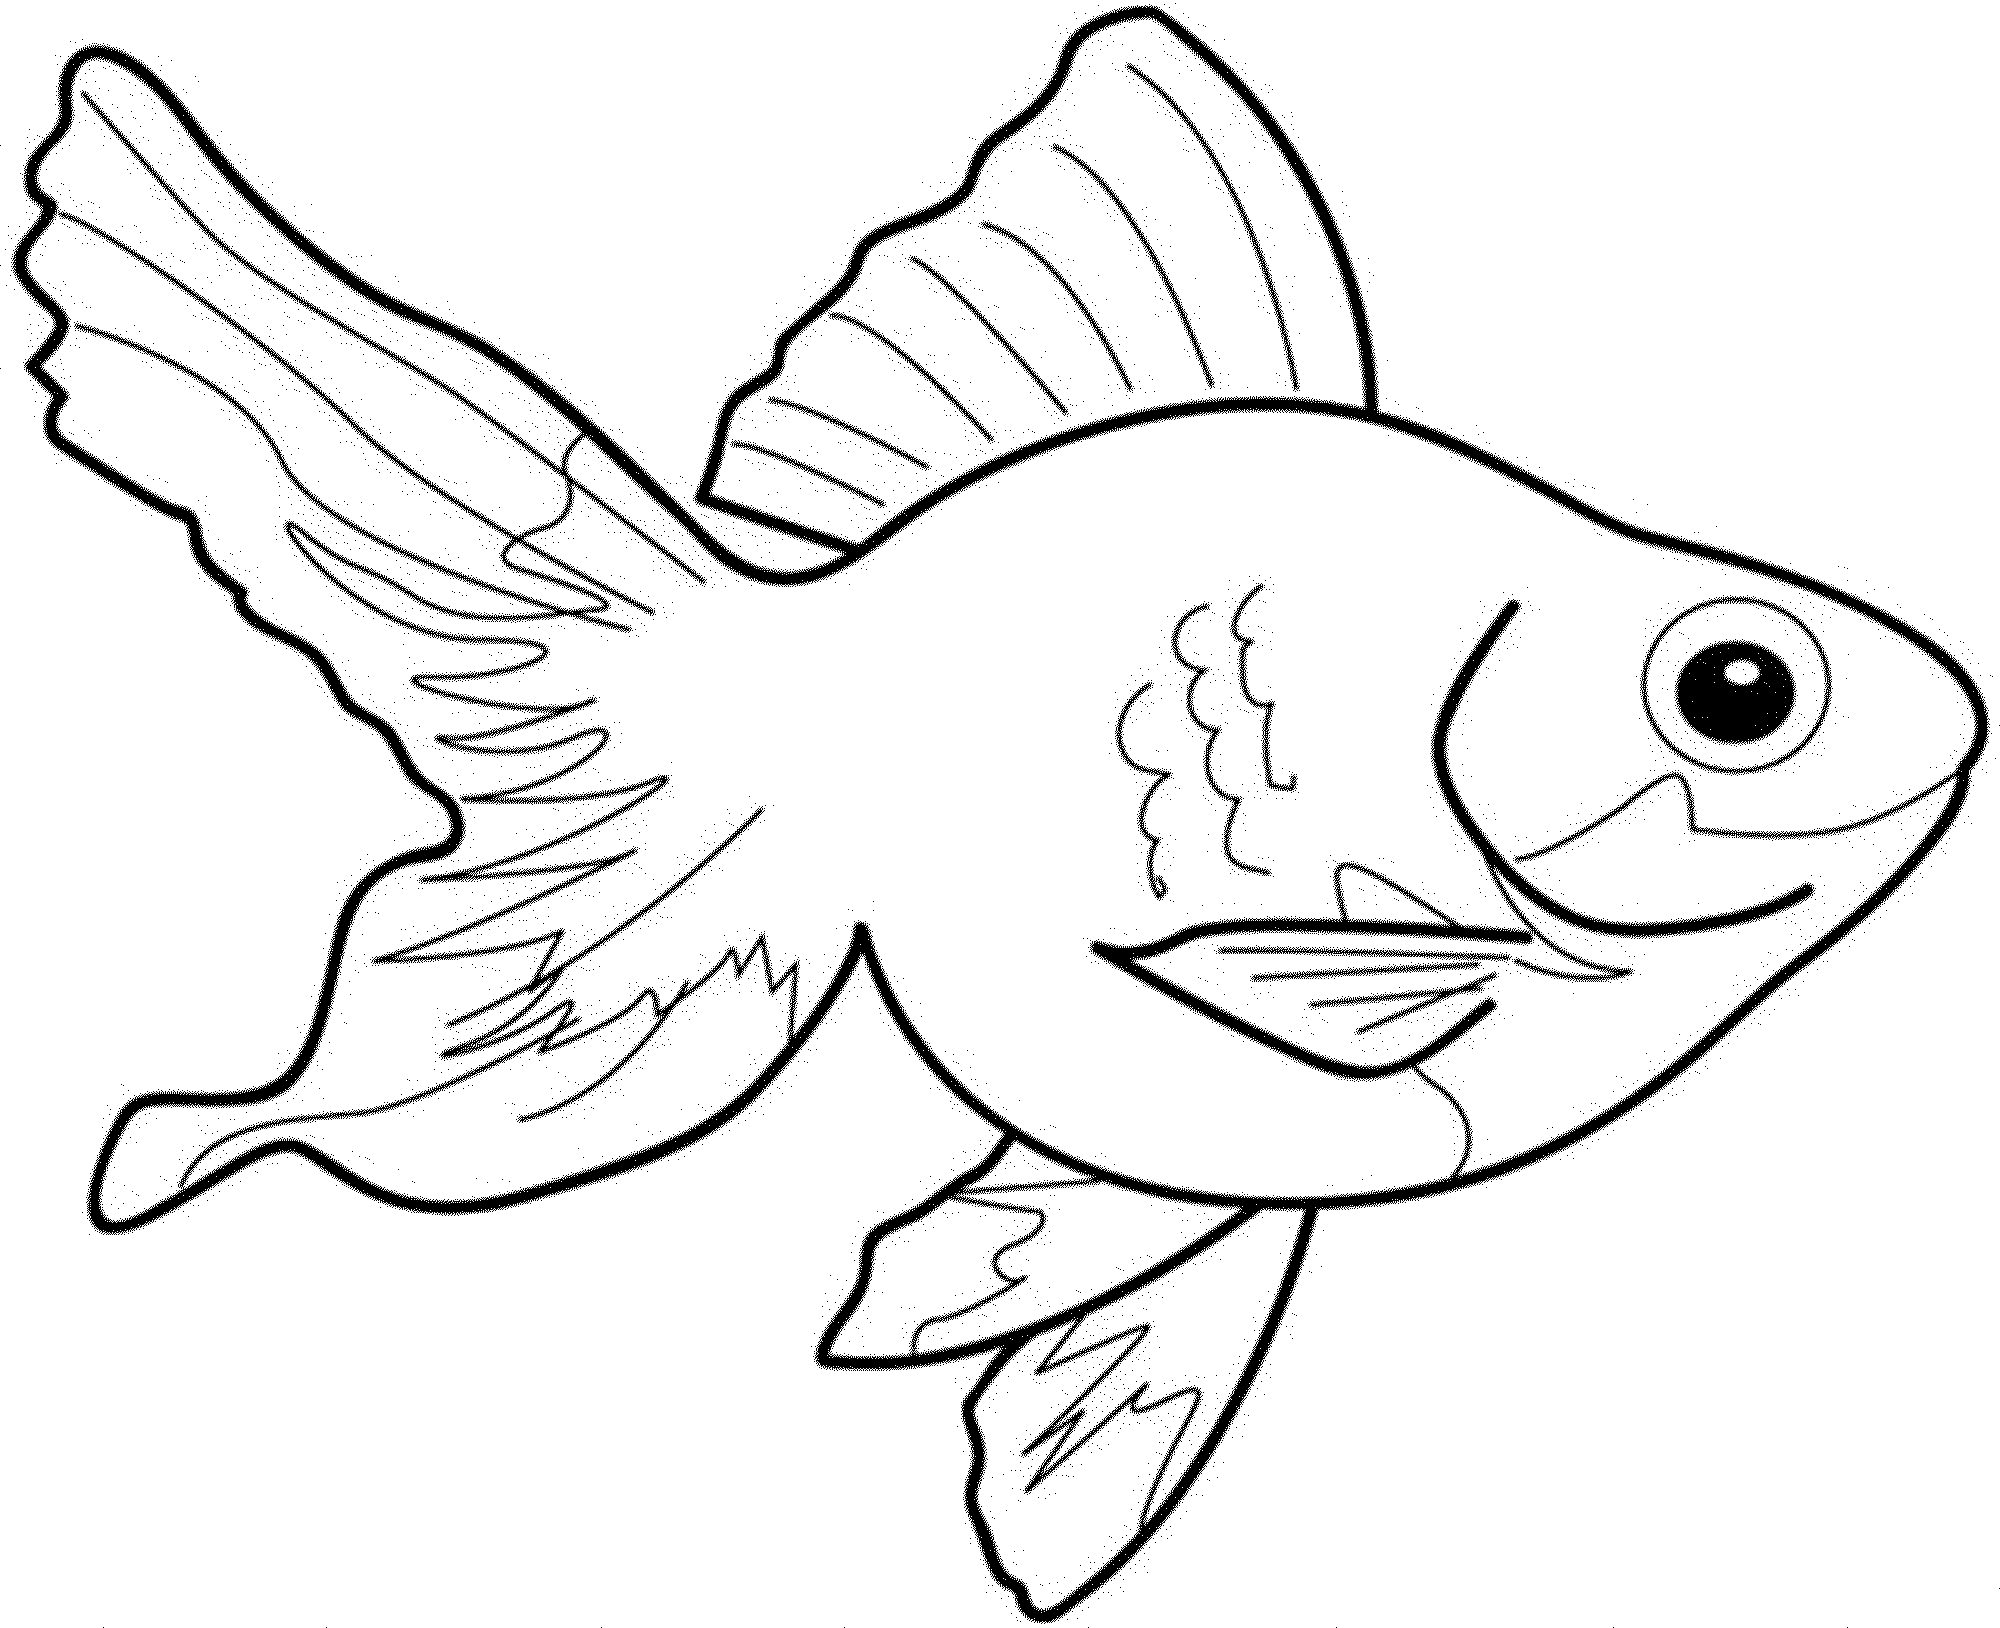 2000x1628 Wonderful Parrot Fish Coloring Page With Fishing Pages